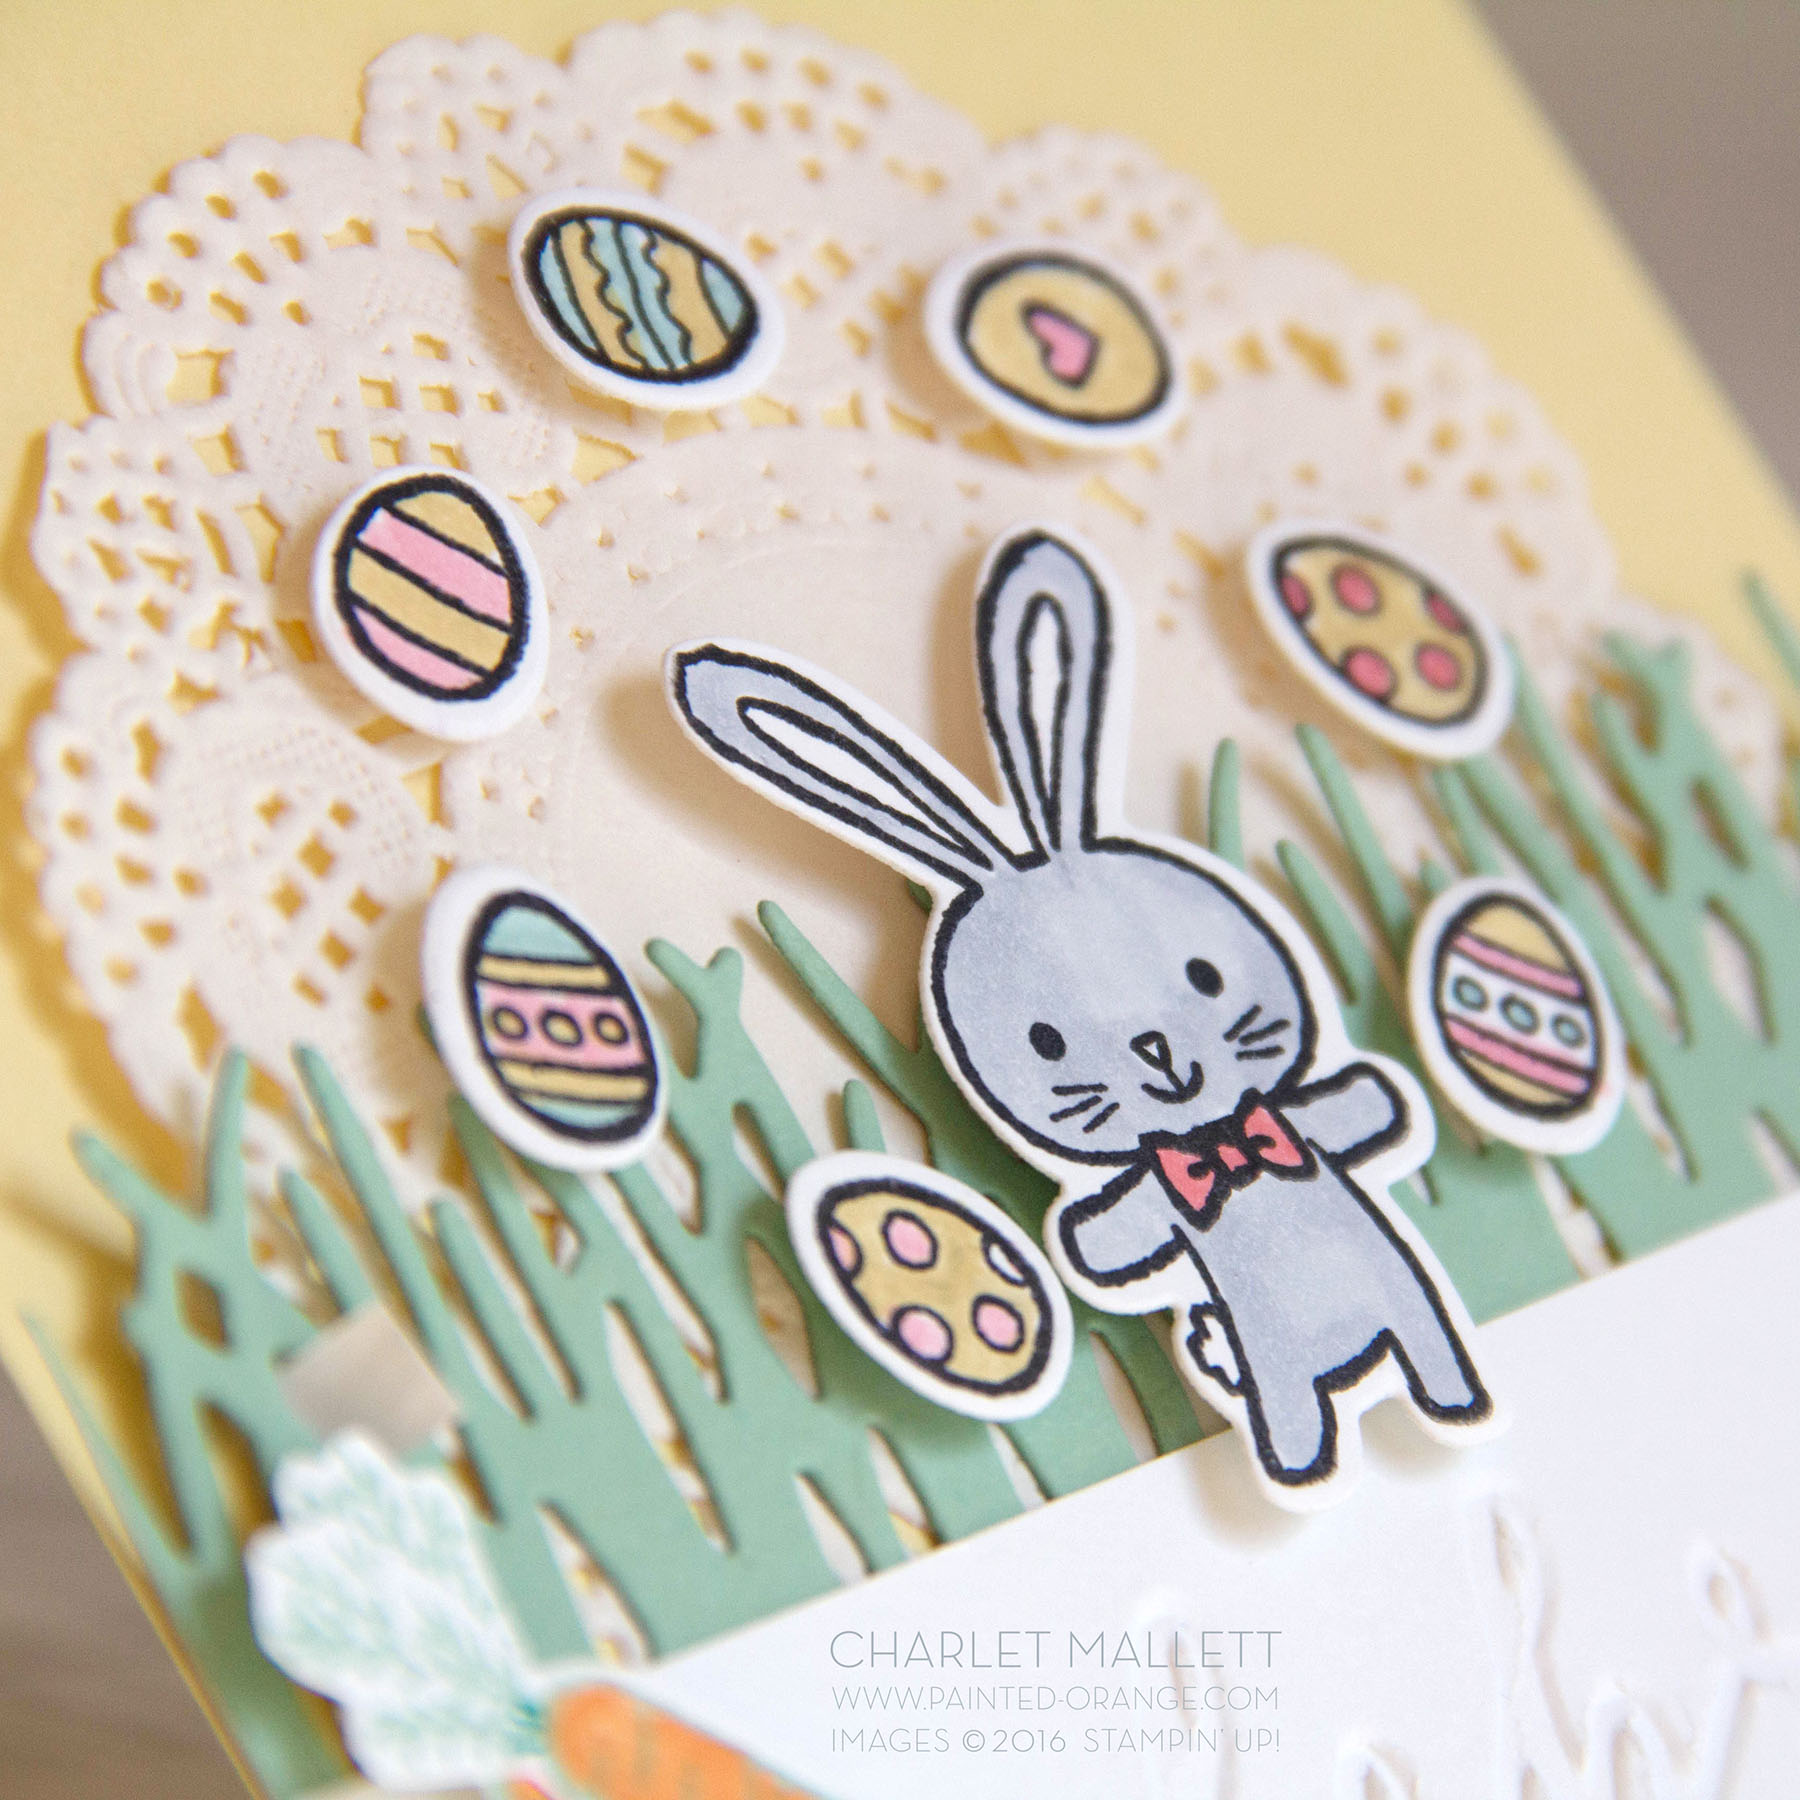 Detail view of juggling bunny.Celebrate Easter Card using the Basket Bunch Stamp set from Stampin' Up! Charlet Mallett